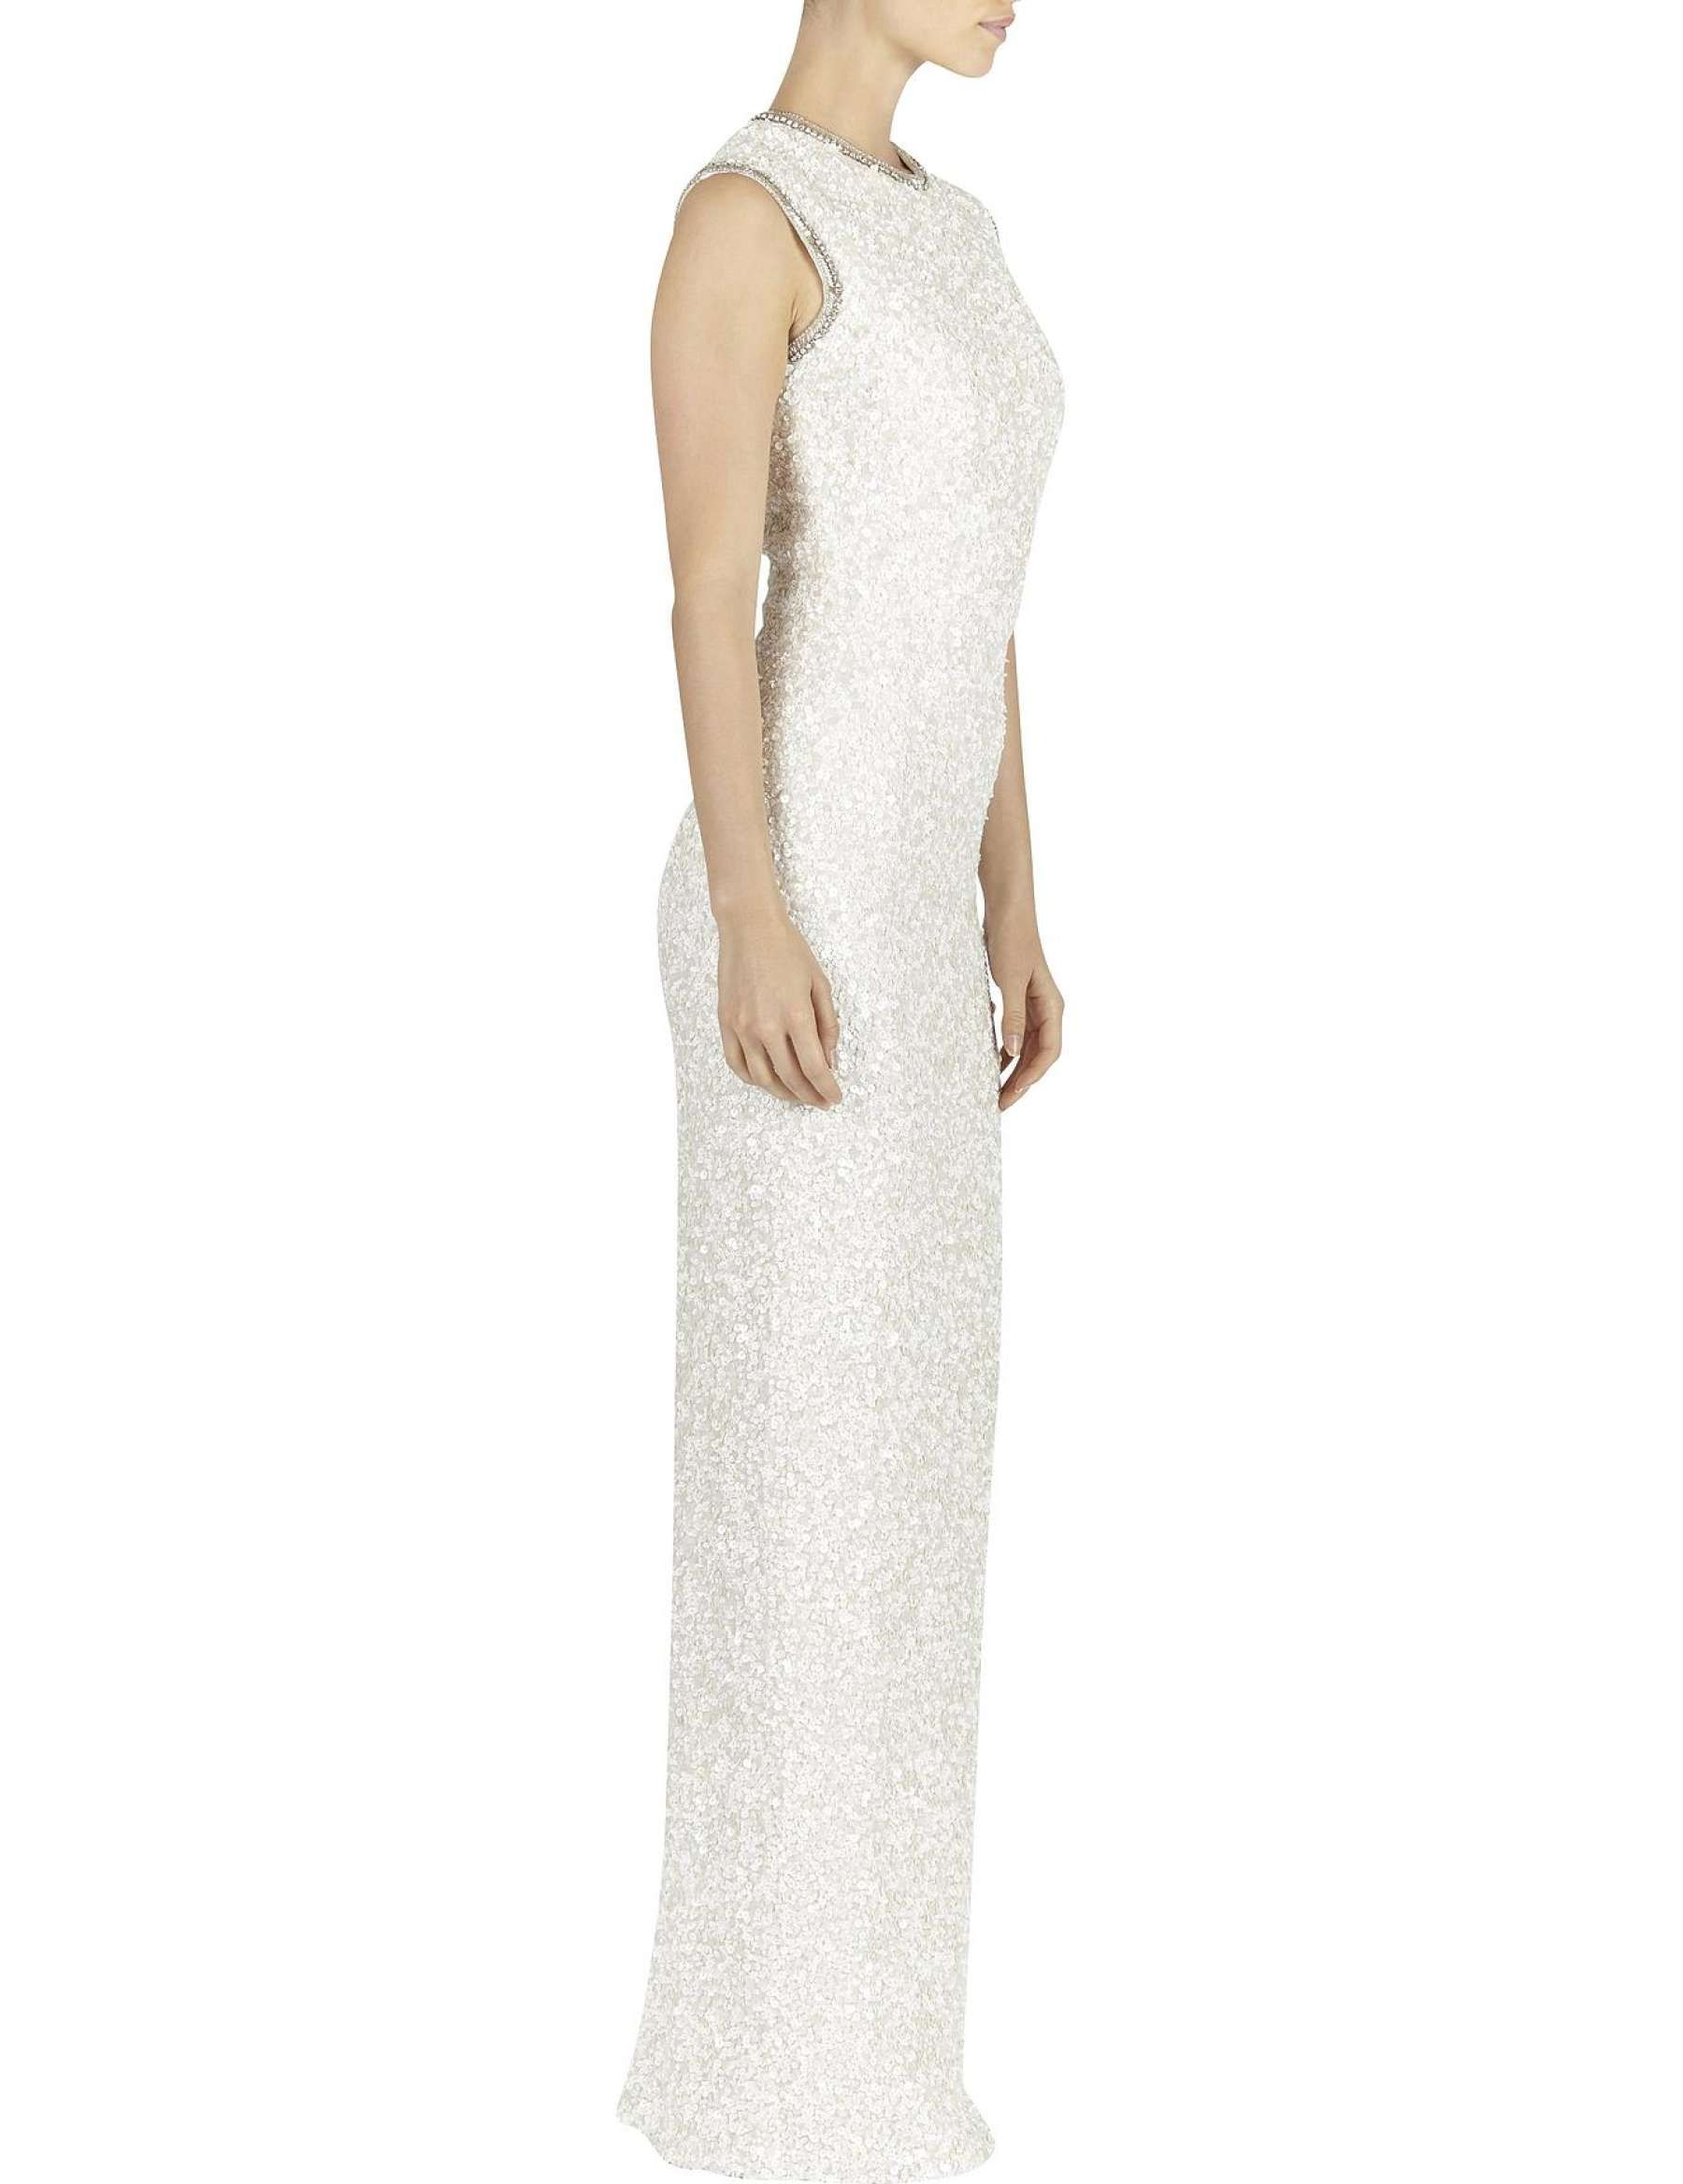 David Jones - Rachel Gilbert Samantha Gown | wedding dresses ...